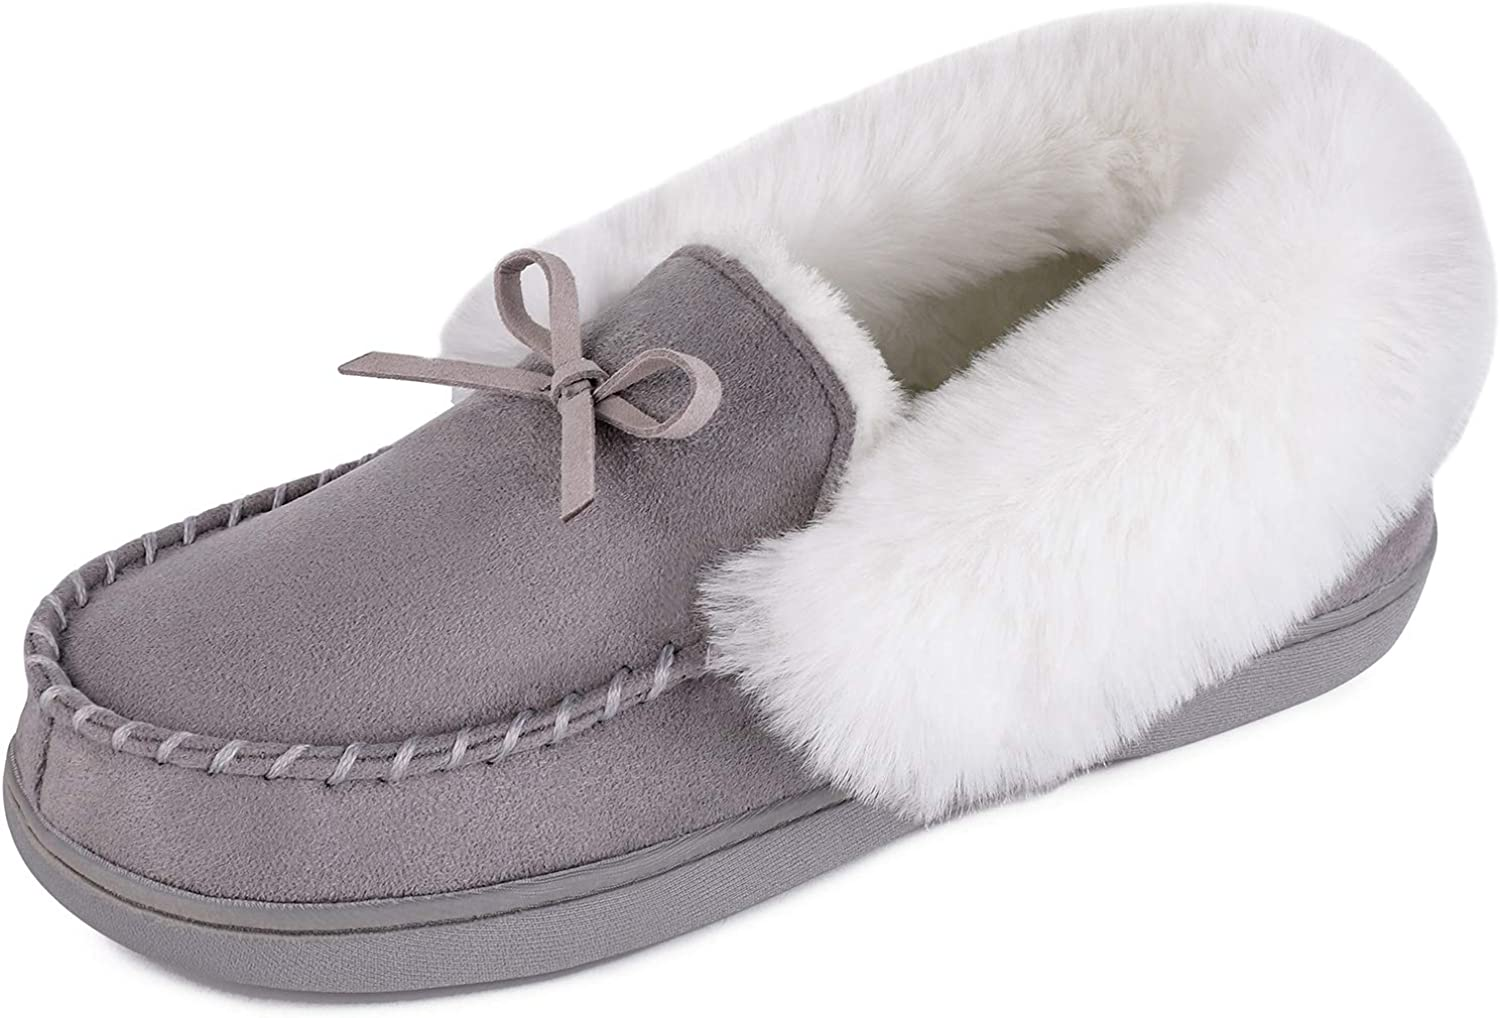 HomeIdeas Women's Faux Fur Lined Suede Moccasins House Slippers, Fuzzy Warm Indoor Outdoor Memory Foam Shoes